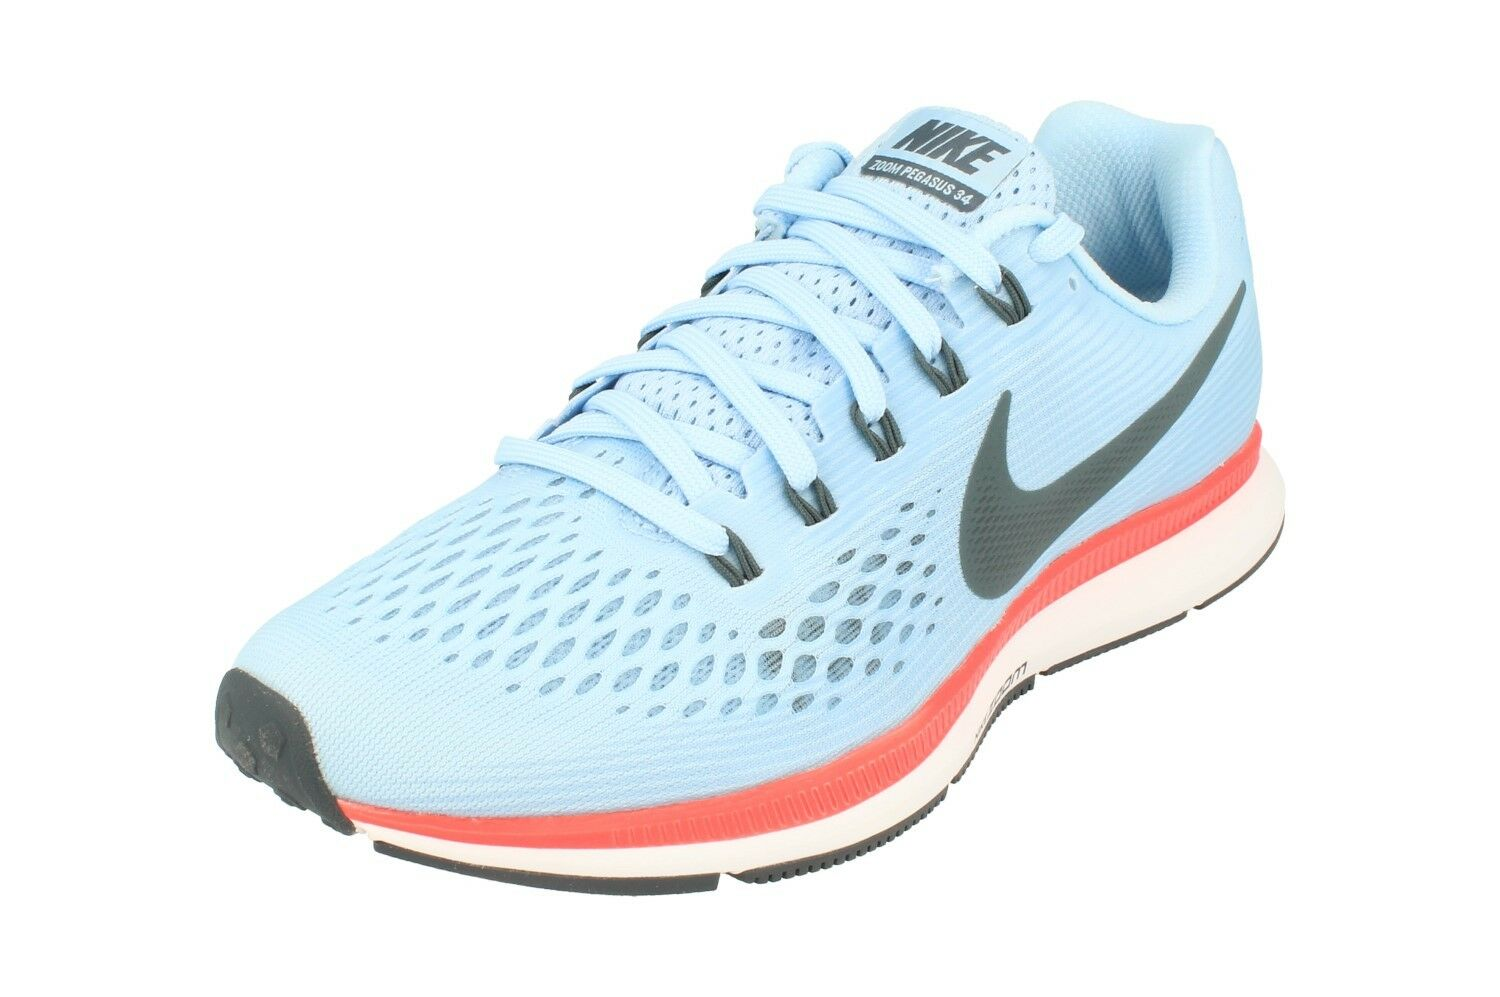 Nike Air Zoom Pegasus 34 Mens Running Trainers 880555 Sneakers Shoes 404